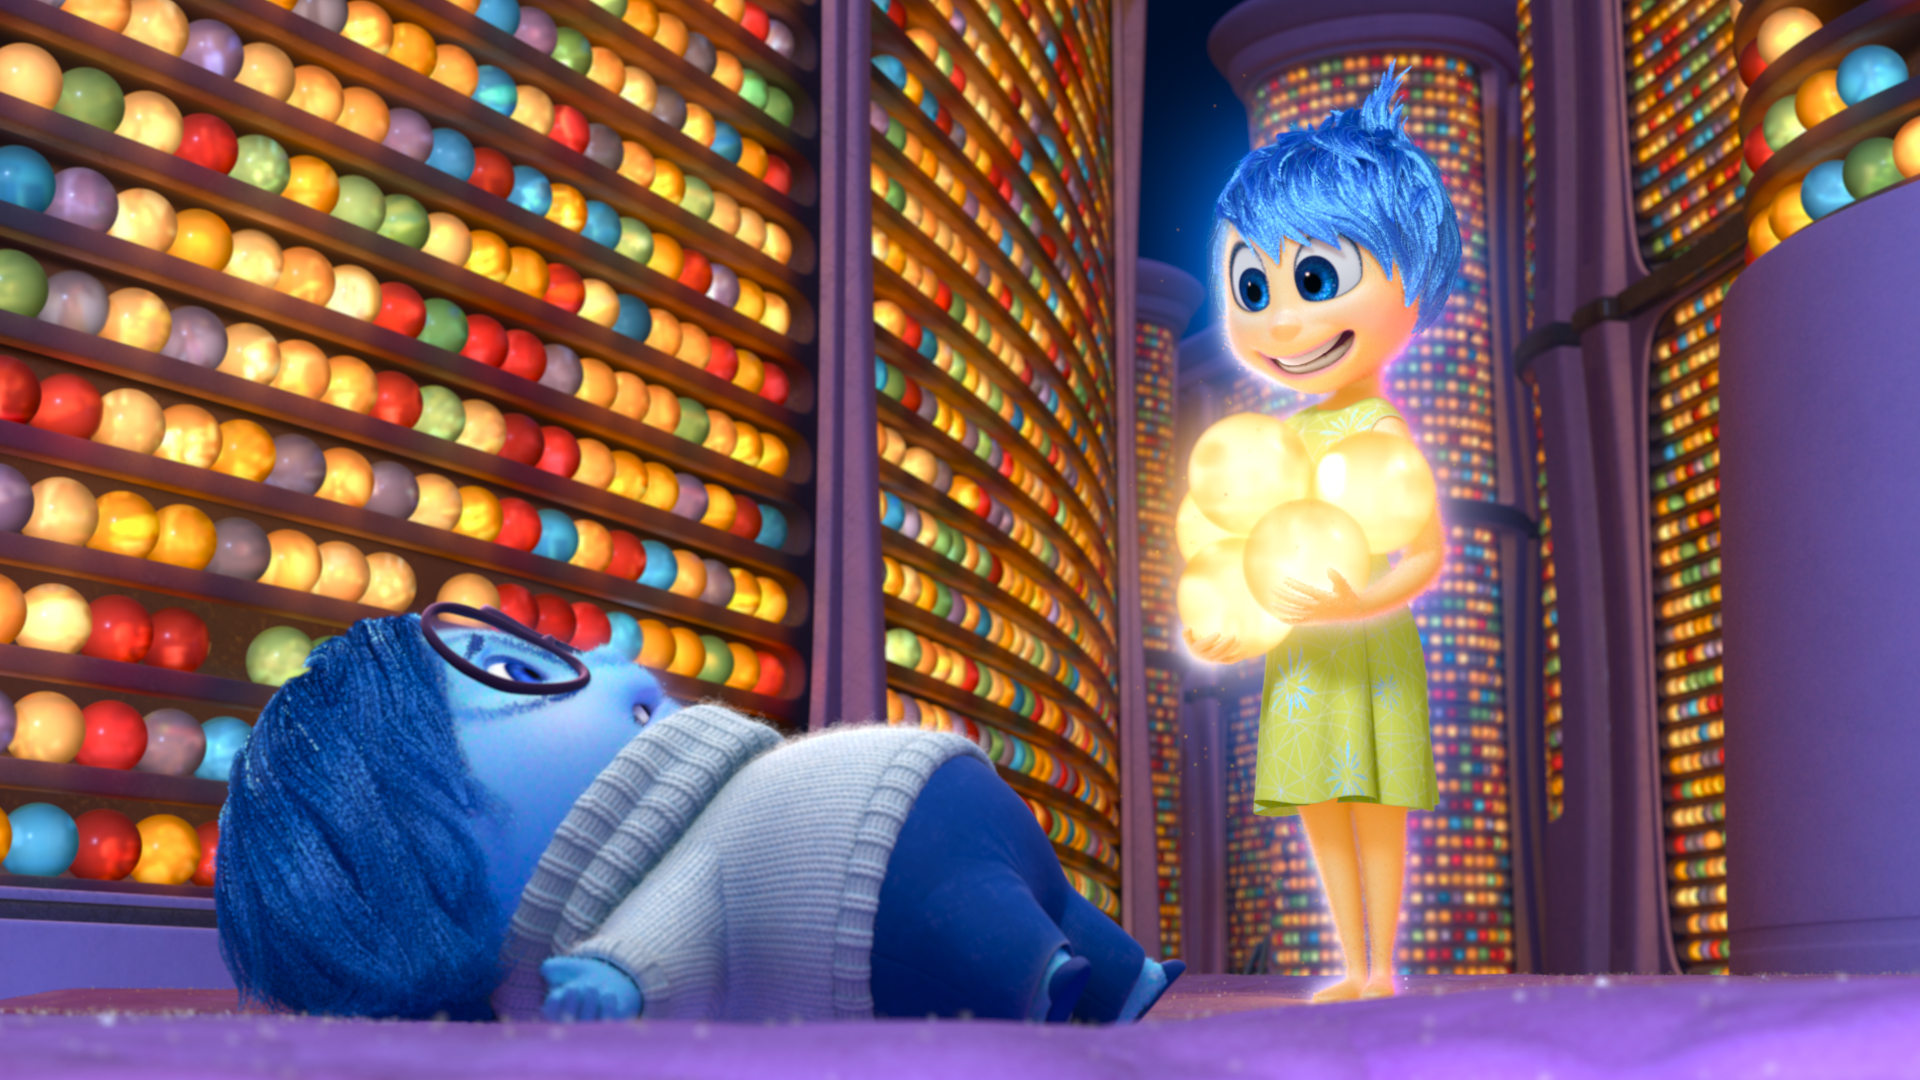 INSIDE OUT - Pictured (L-R): Sadness, Joy. 2015 Disney Pixar. All Rights Reserved.